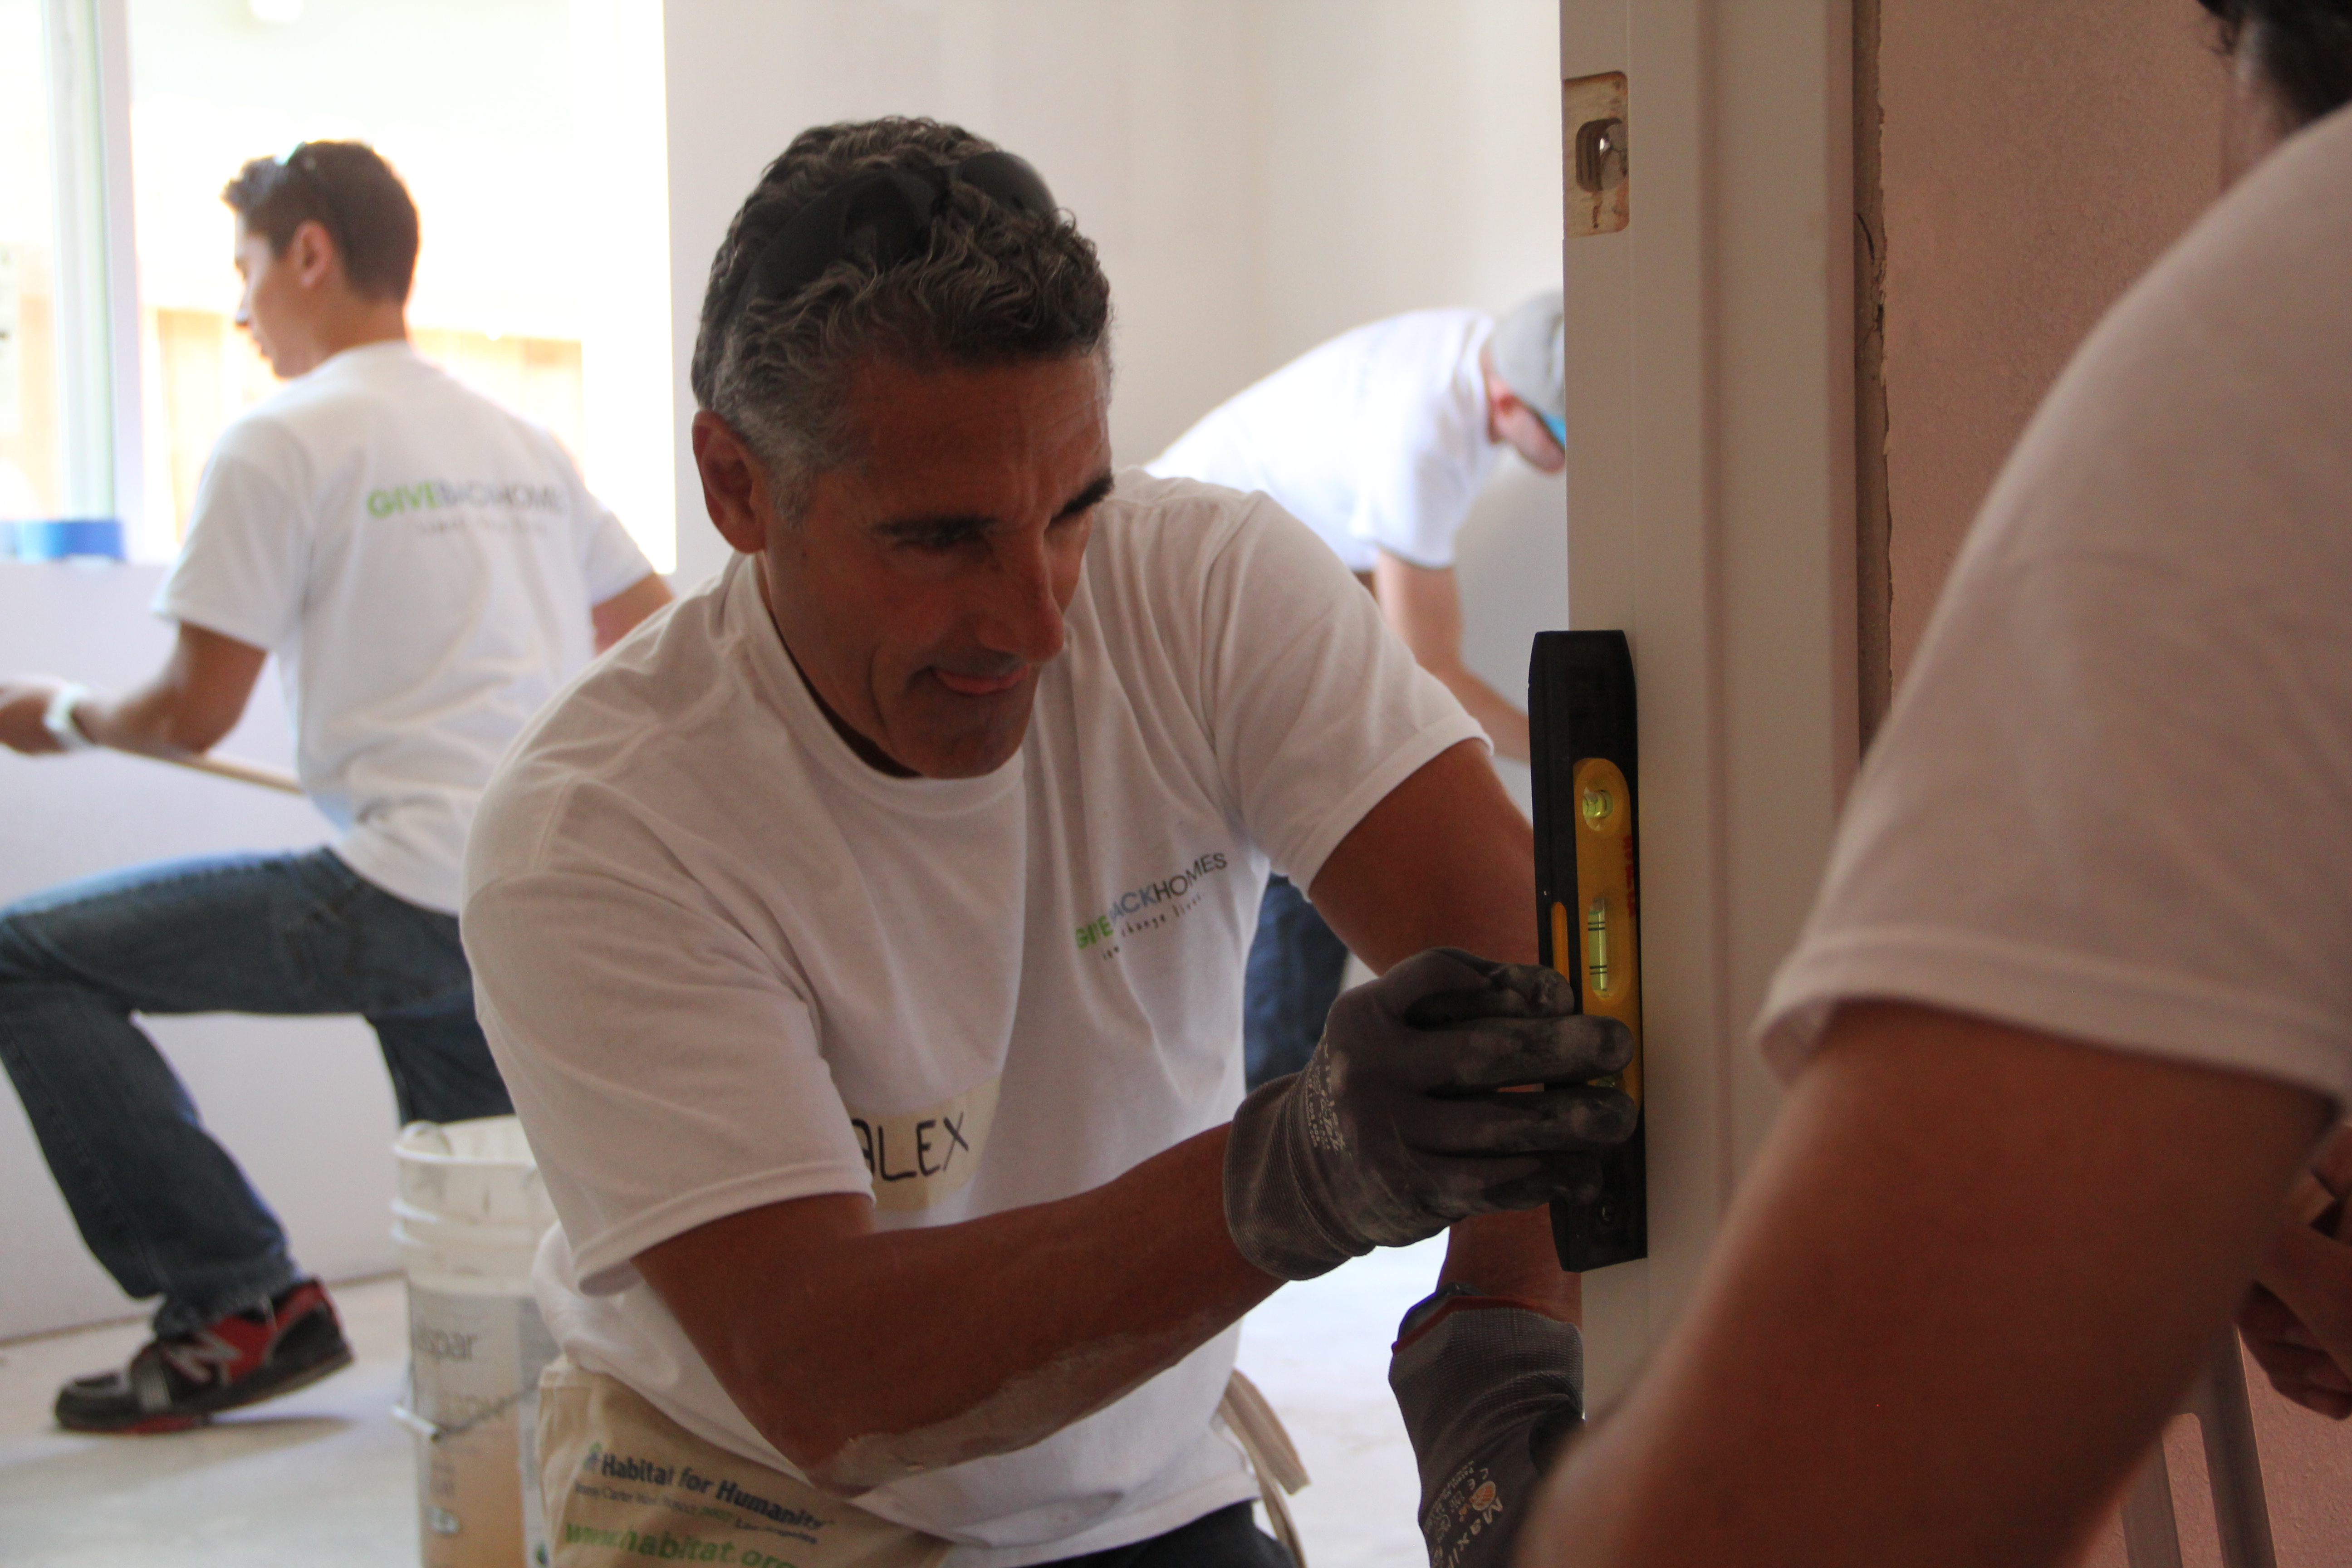 Alex Abad chips in during a 'build day' in Los Angeles, when volunteers helped construct a home for a needy family.